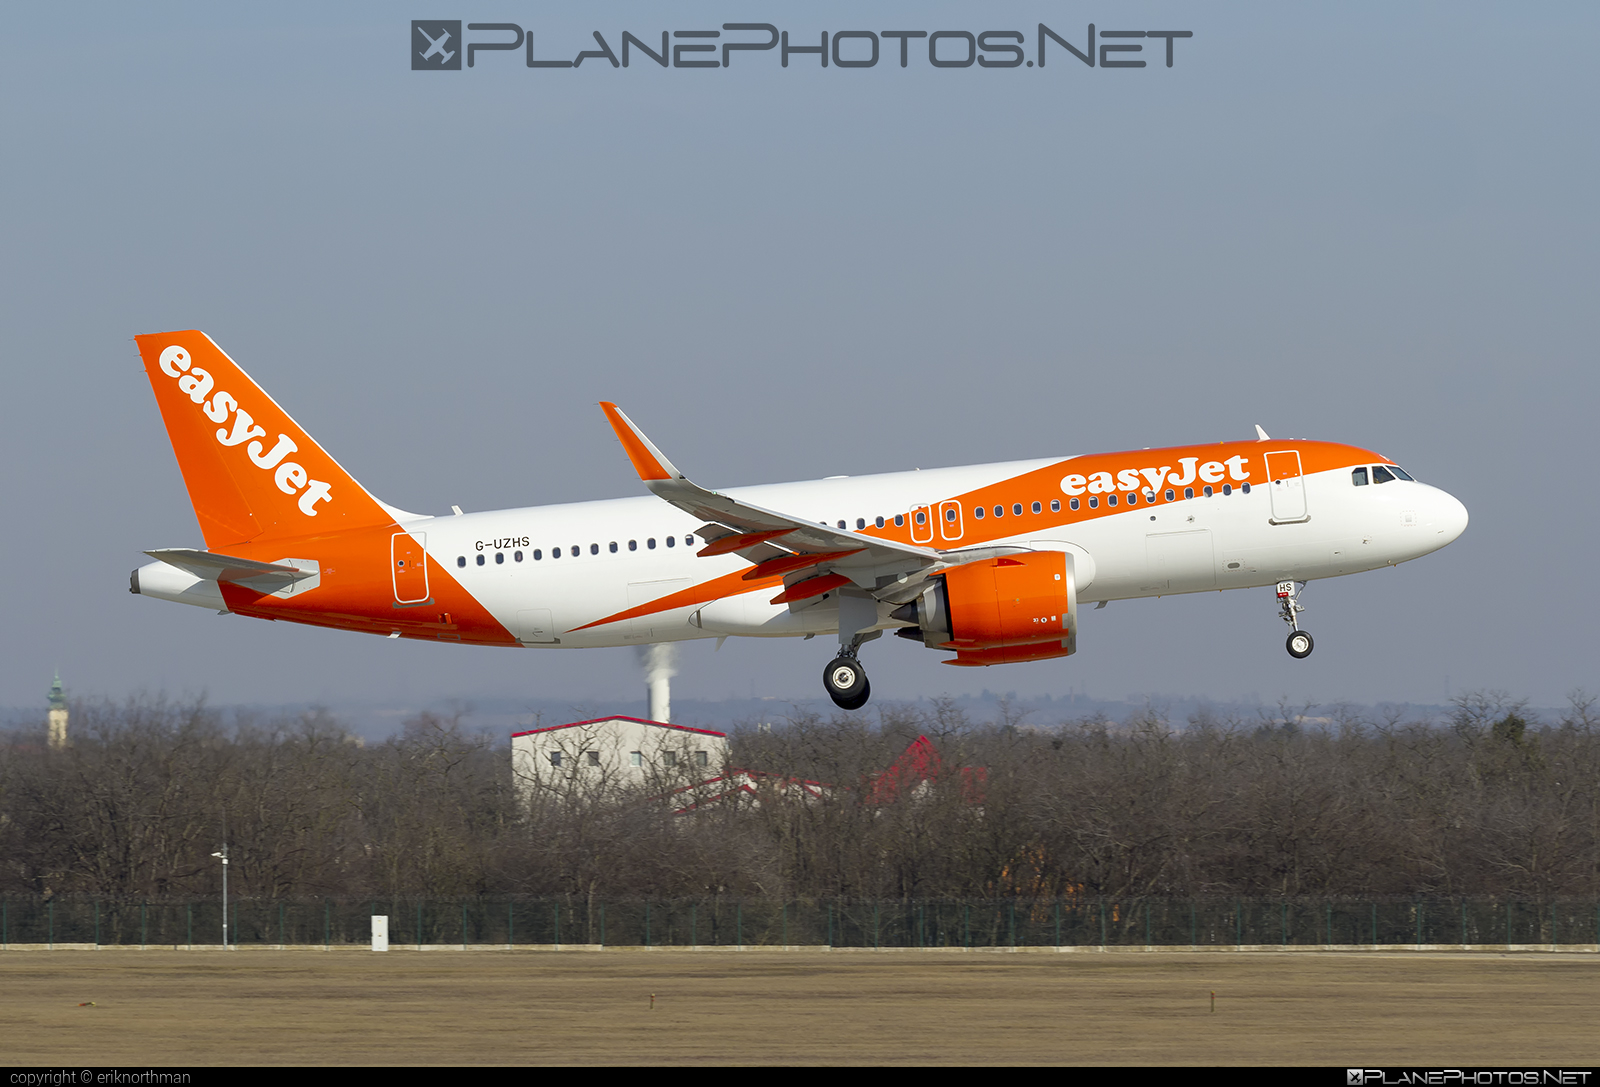 Airbus A320-251N - G-UZHS operated by easyJet #a320 #a320family #a320neo #airbus #airbus320 #easyjet